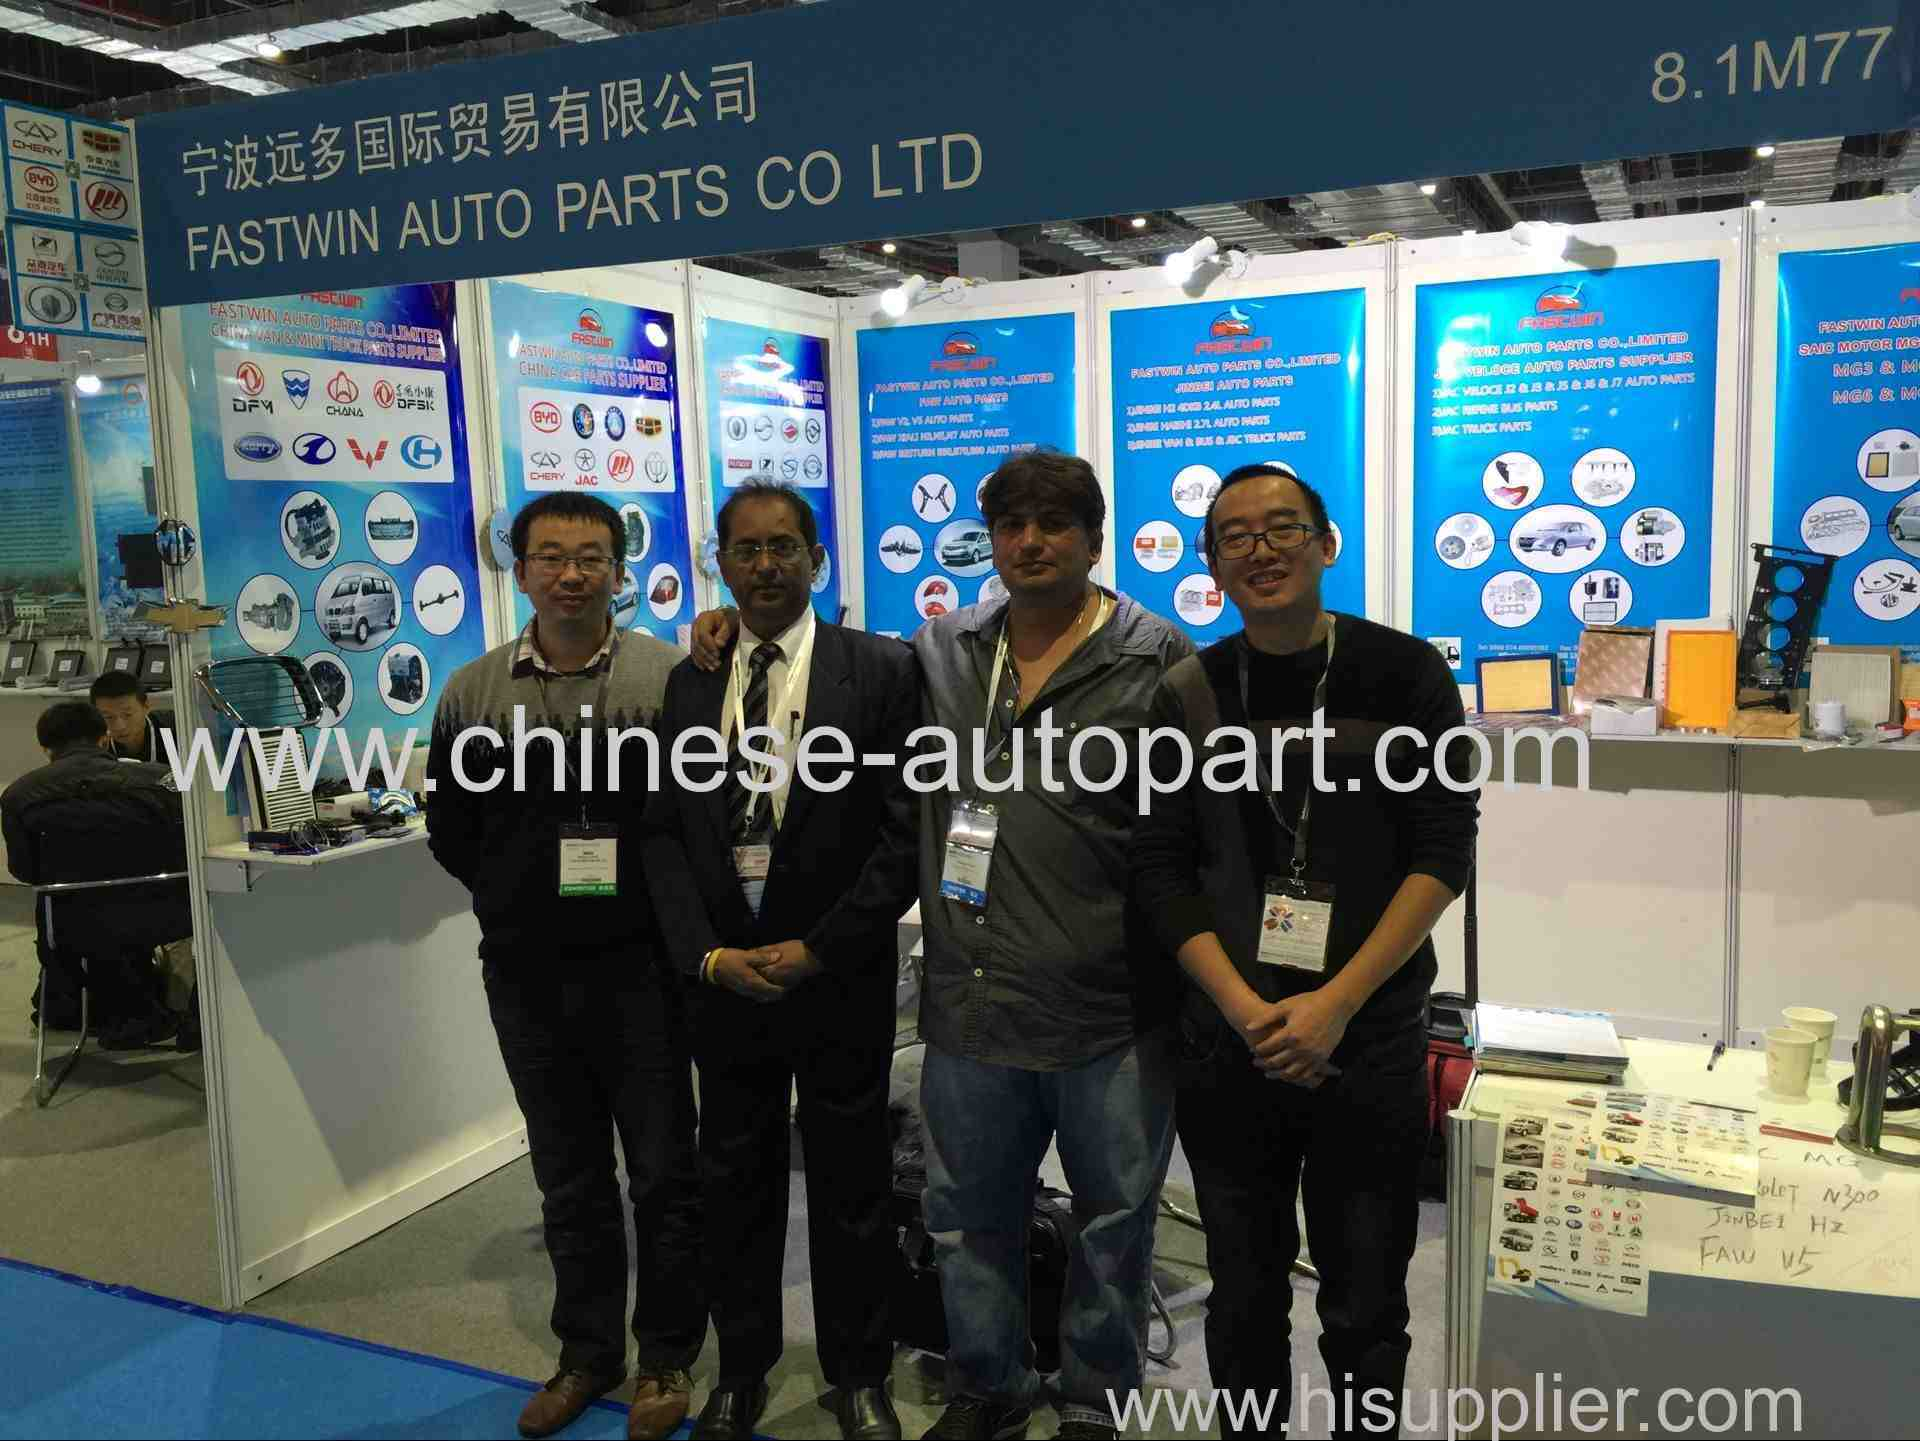 FASTWIN AUTO PARTS SHOW 2015 IN SHANGHAI